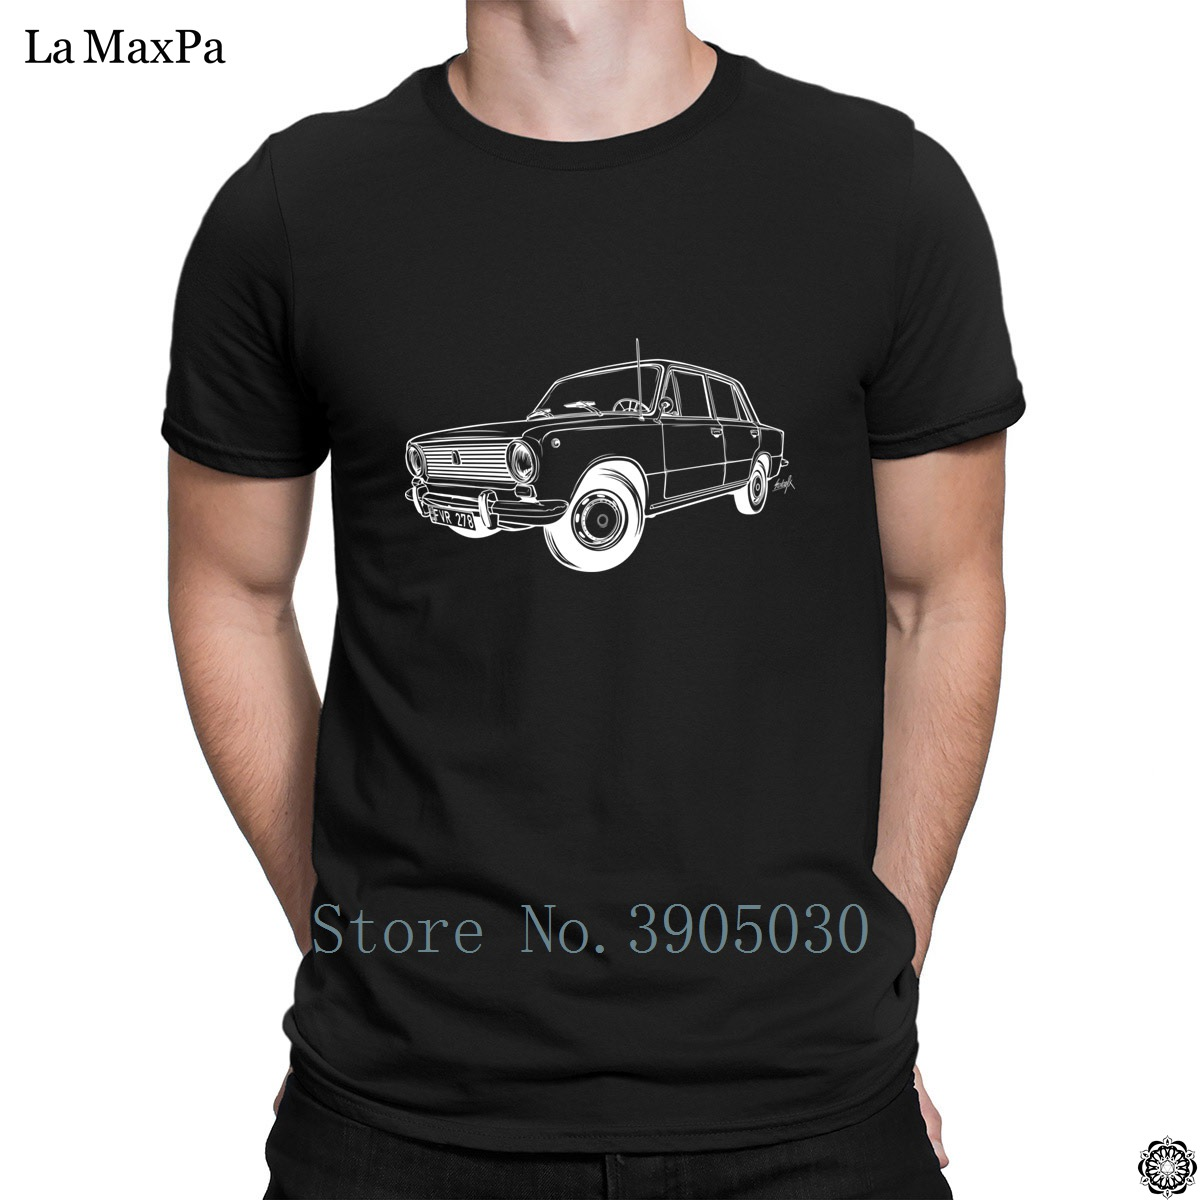 Clothes Short-Sleeve T-Shirt <font><b>Lada</b></font> Vaz <font><b>2101</b></font> T Shirt For Mens Letter Men's Tshirt Awesome Casual Men's Tee Shirt Pop Top Tee image